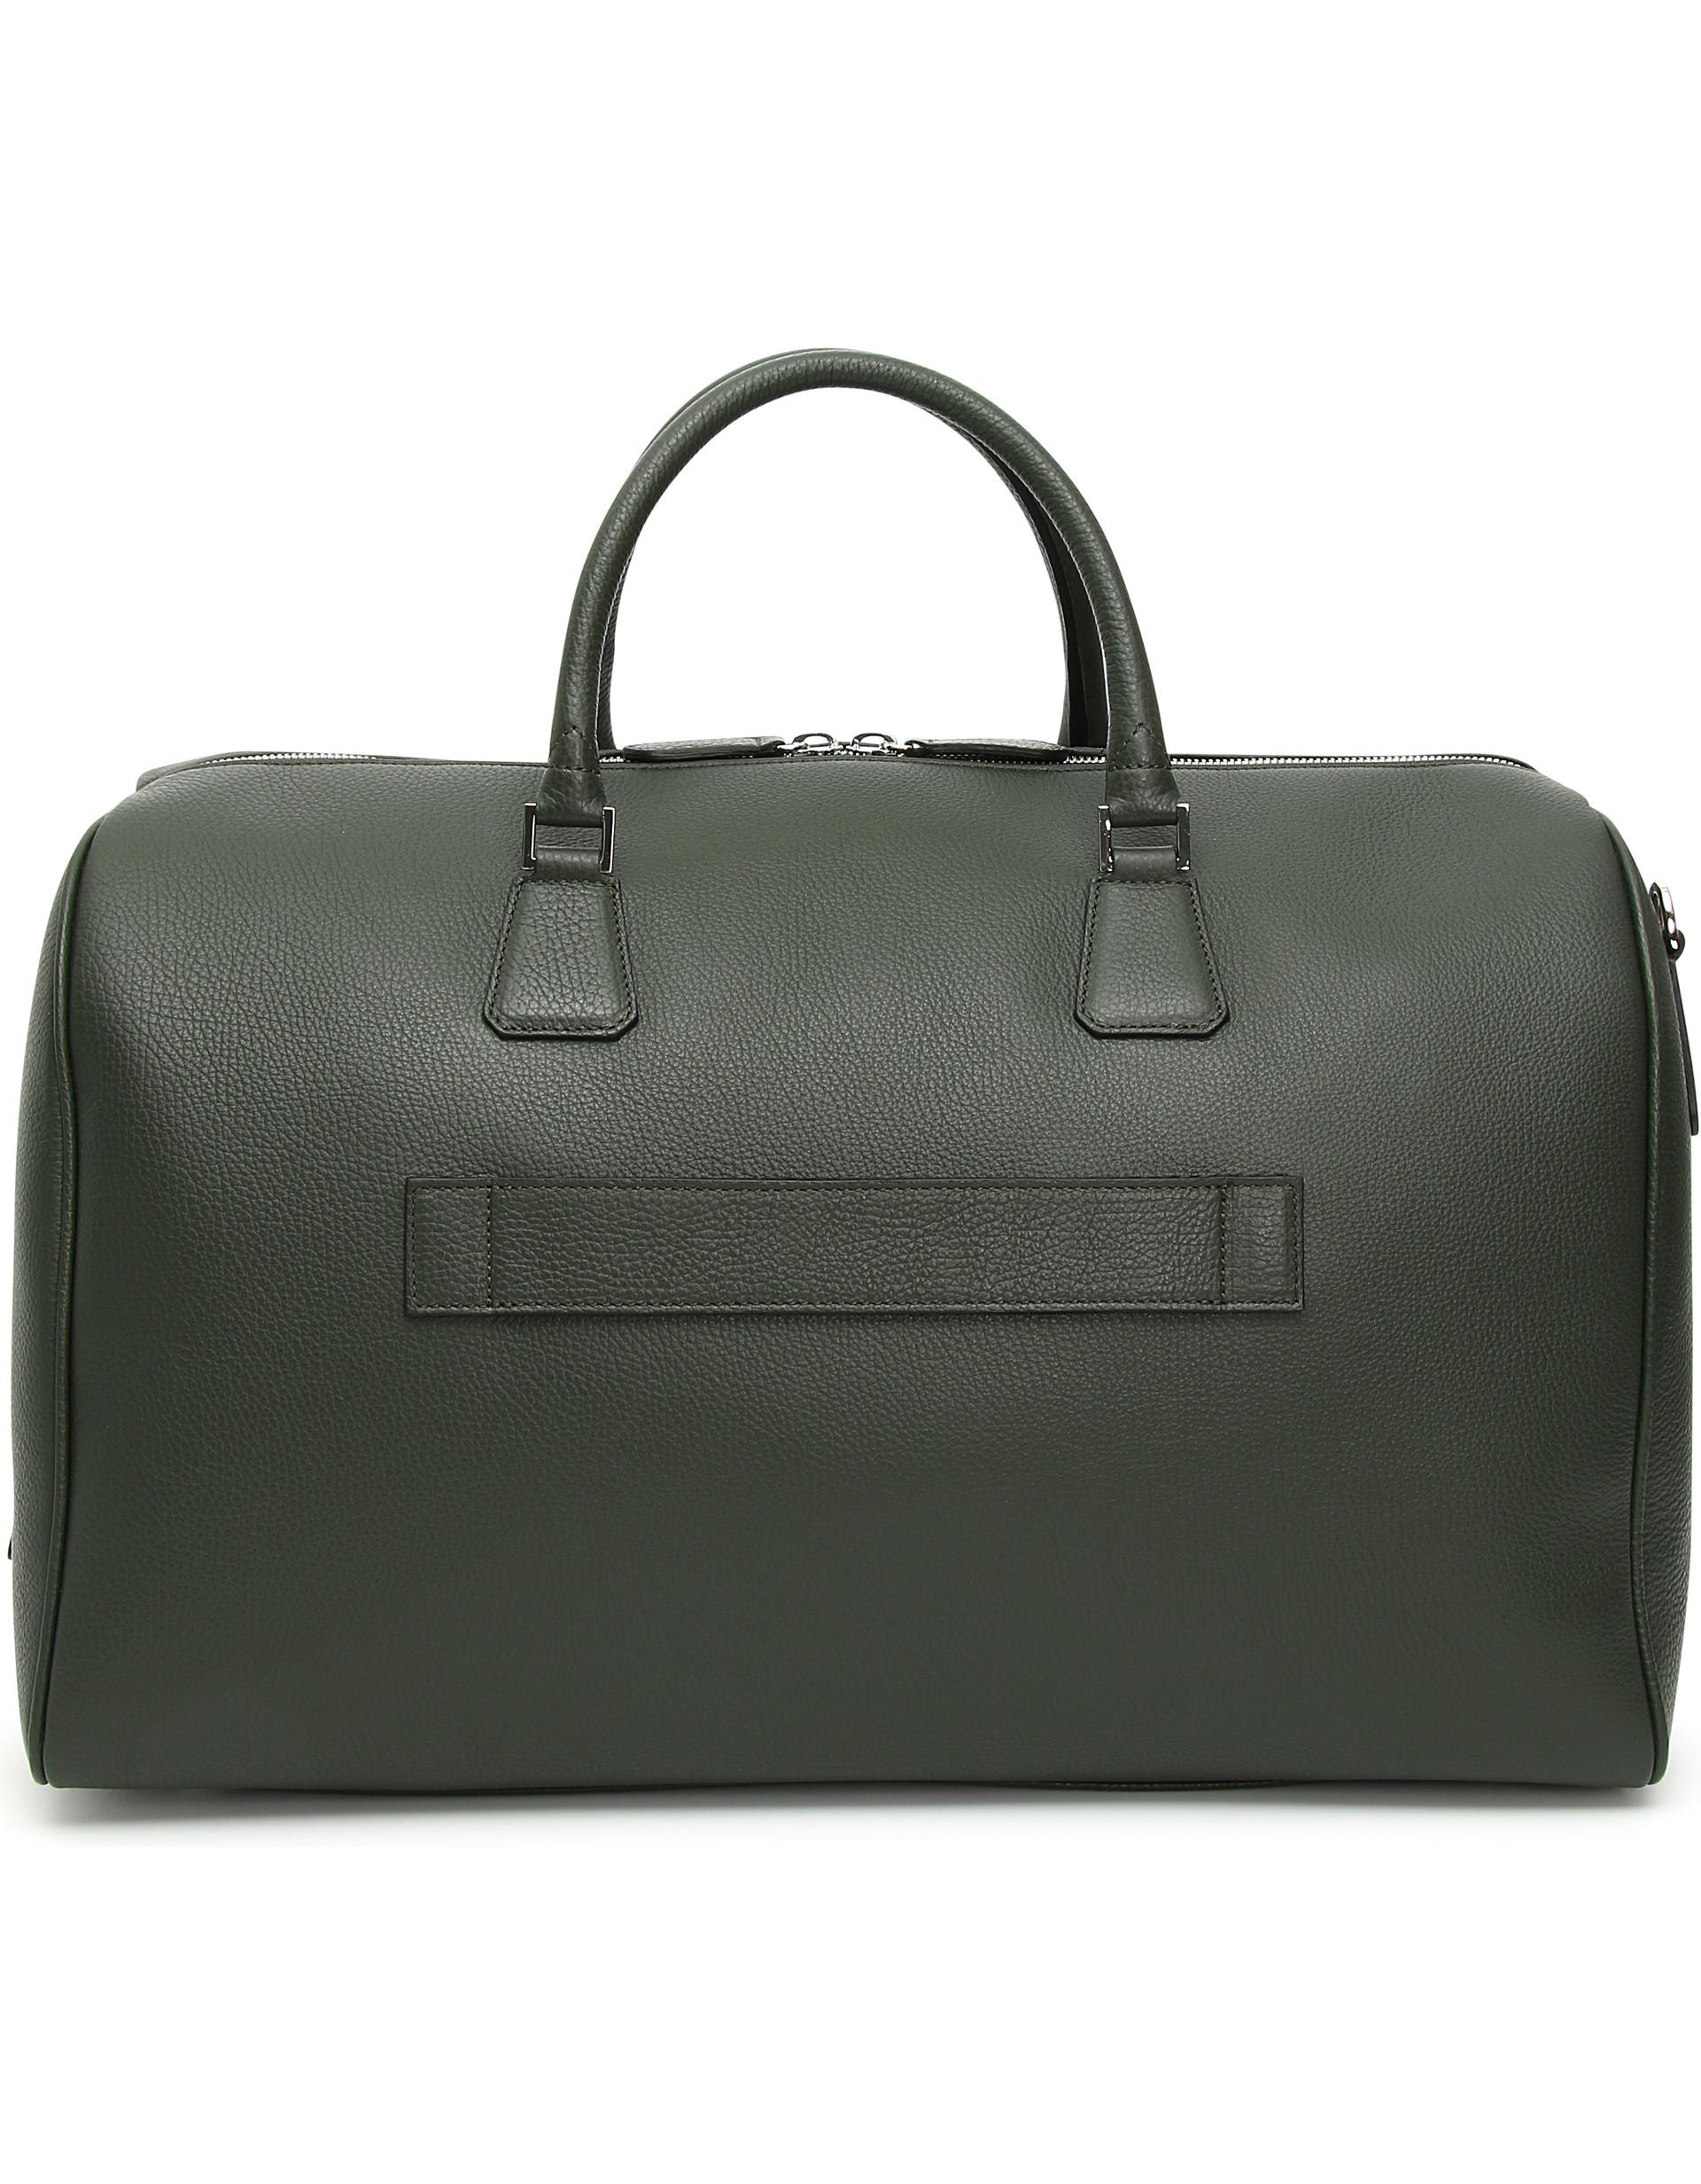 84e12df667c Lyst - Canali Green And Black Calfskin Leather Duffel Bag for Men